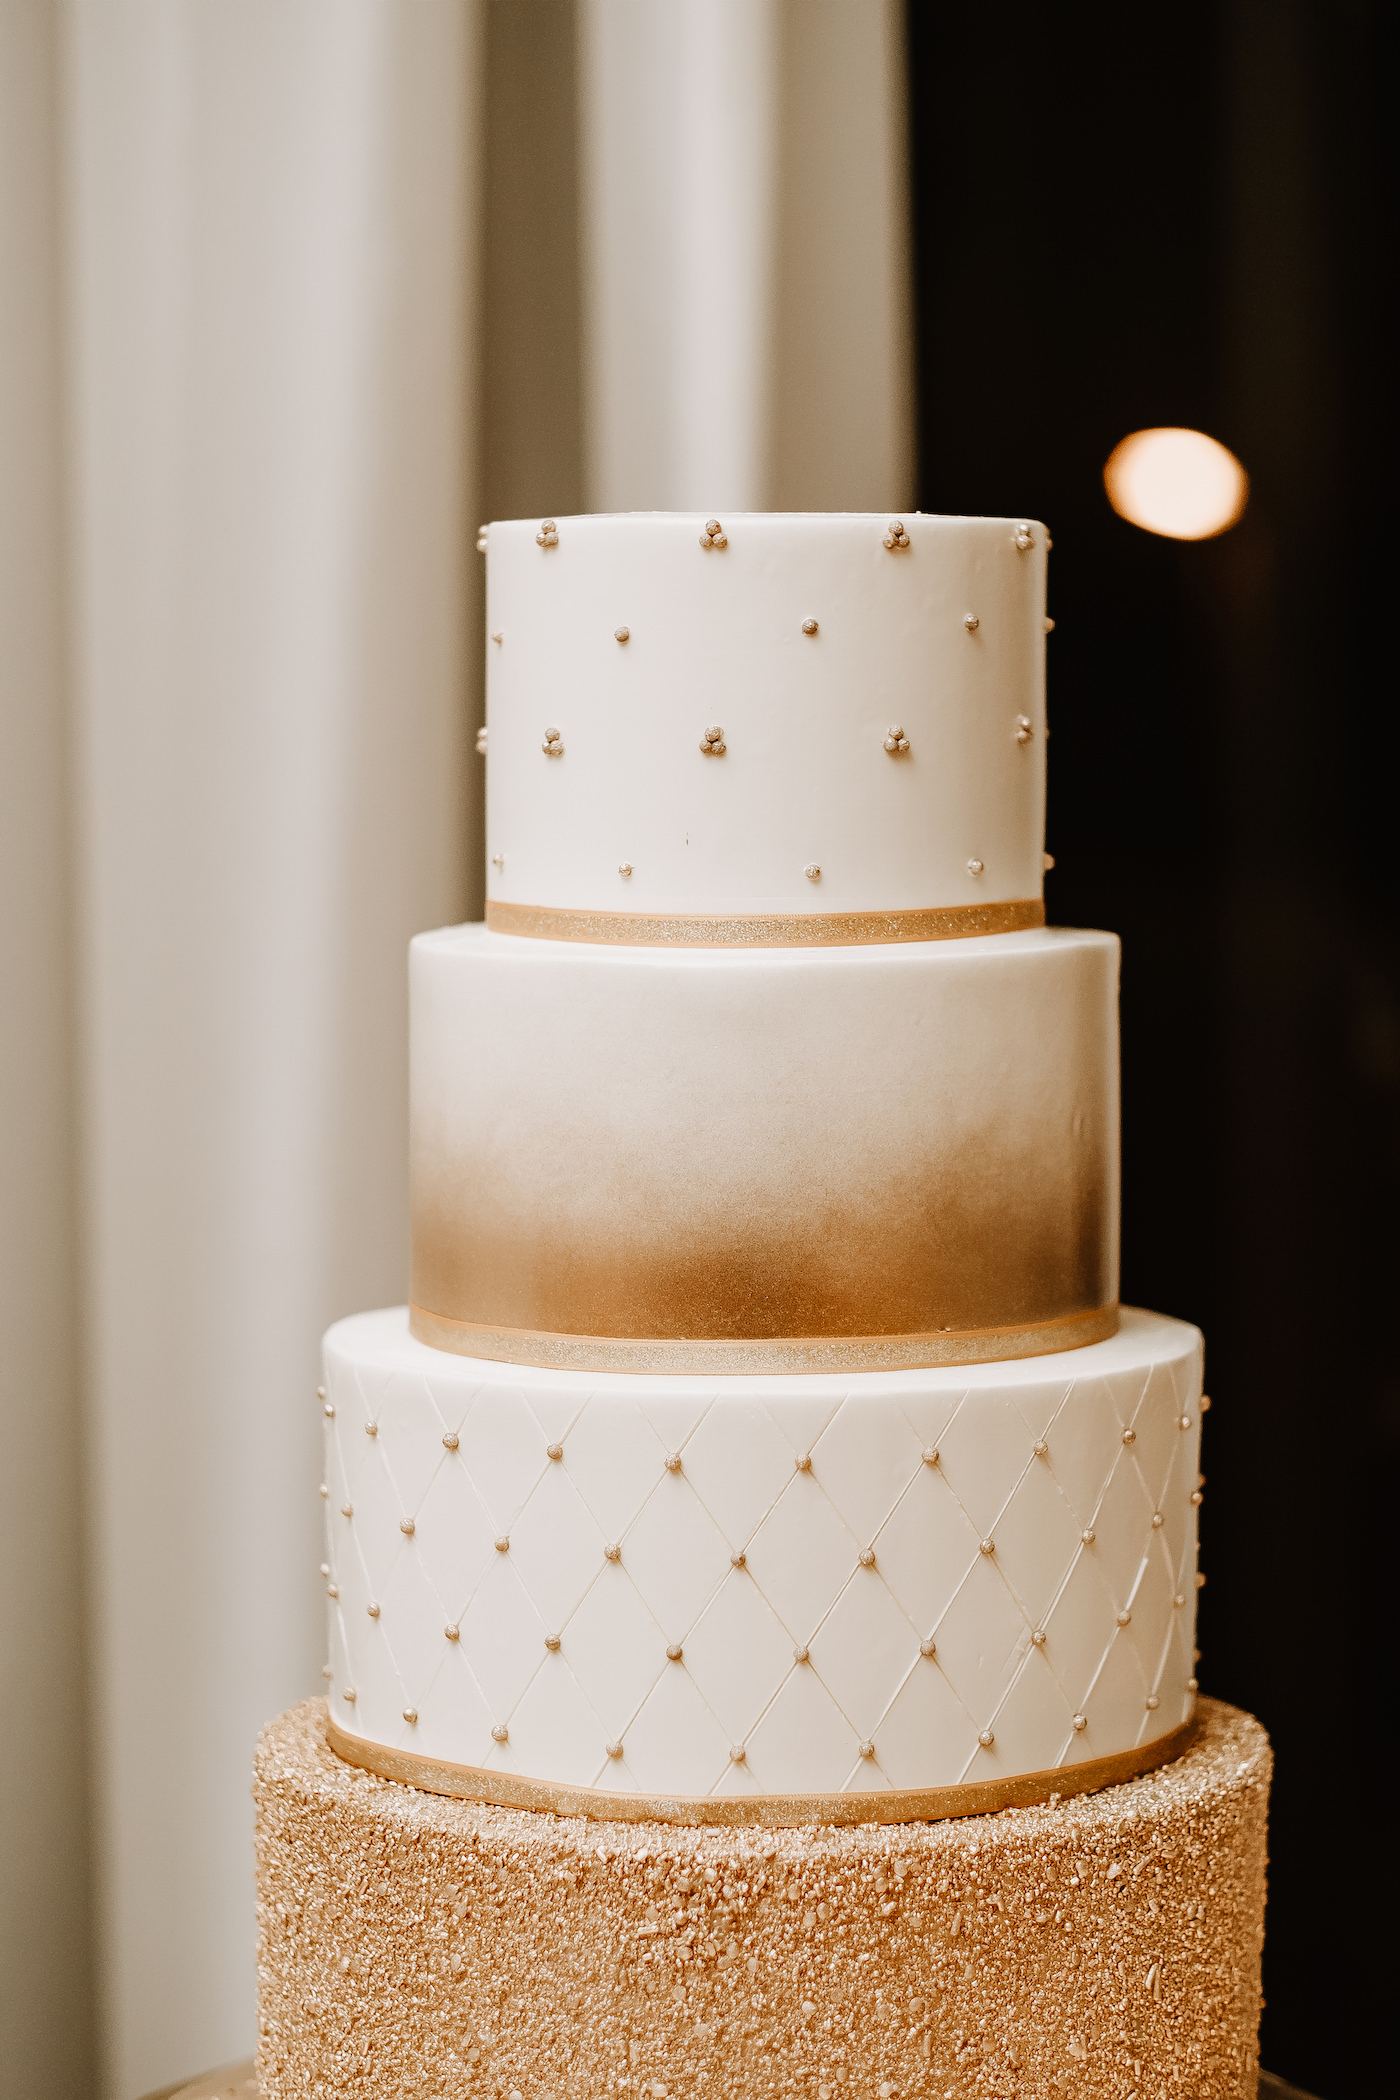 Round Four Tier Wedding Cake with Metallic Gold Embellishment Patterns   Tampa Cake Bakery The Artistic Whisk